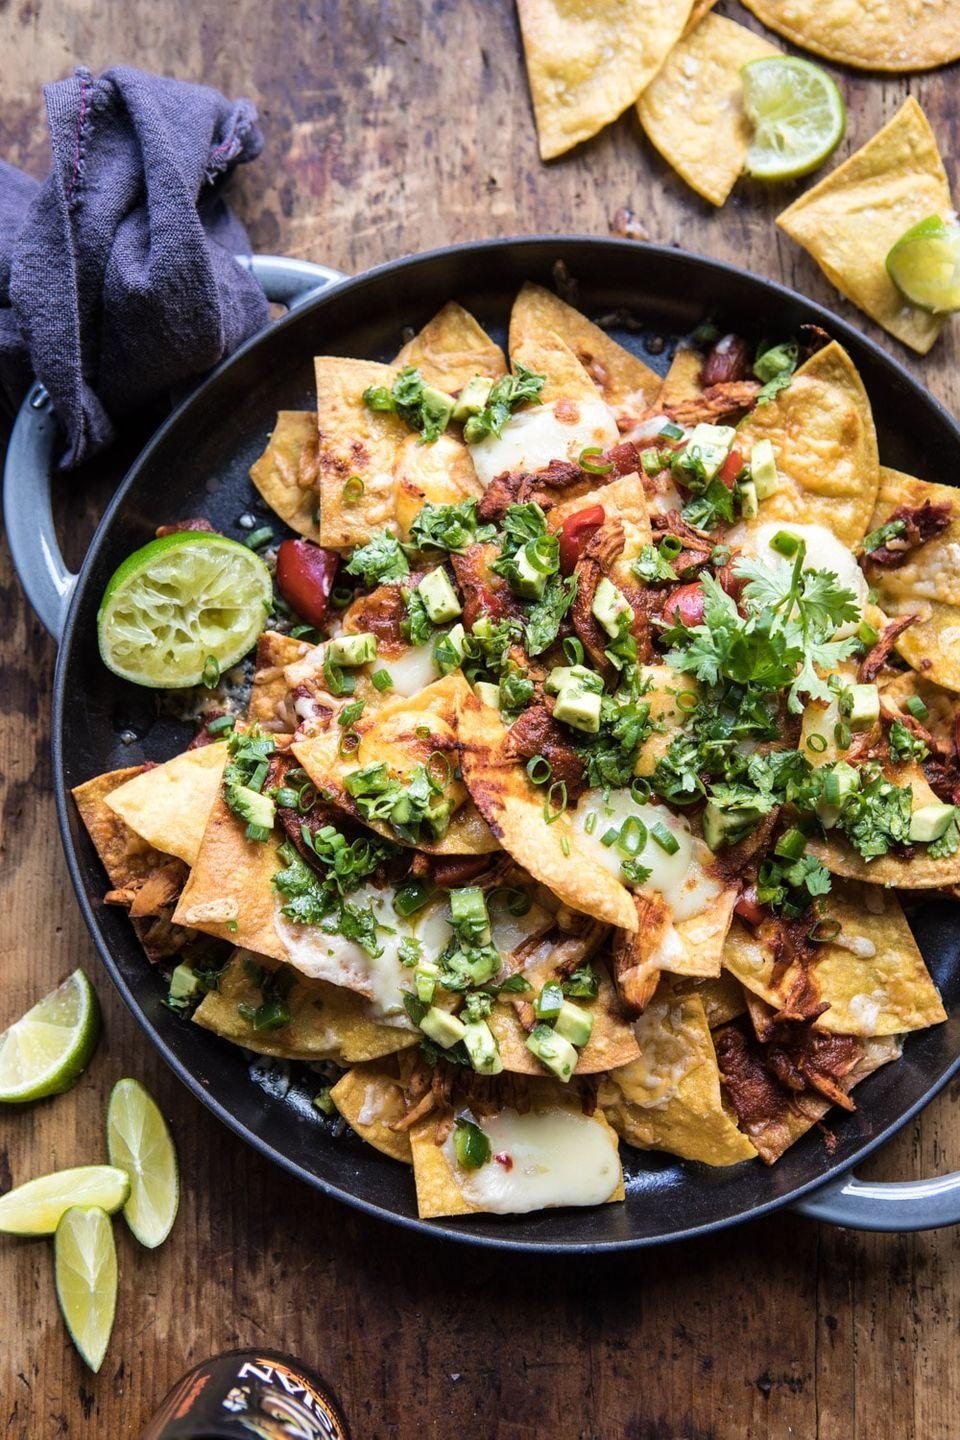 "<p>These decked-out nachos are layered with an enchilada sauce, two different cheeses, and an avocado salsa. It doesn't get any tastier than this!</p><p><strong>Get the recipe at <a href=""https://www.halfbakedharvest.com/chipotle-braised-chicken-nachos/"" rel=""nofollow noopener"" target=""_blank"" data-ylk=""slk:Half Baked Harvest"" class=""link rapid-noclick-resp"">Half Baked Harvest</a>.</strong></p>"